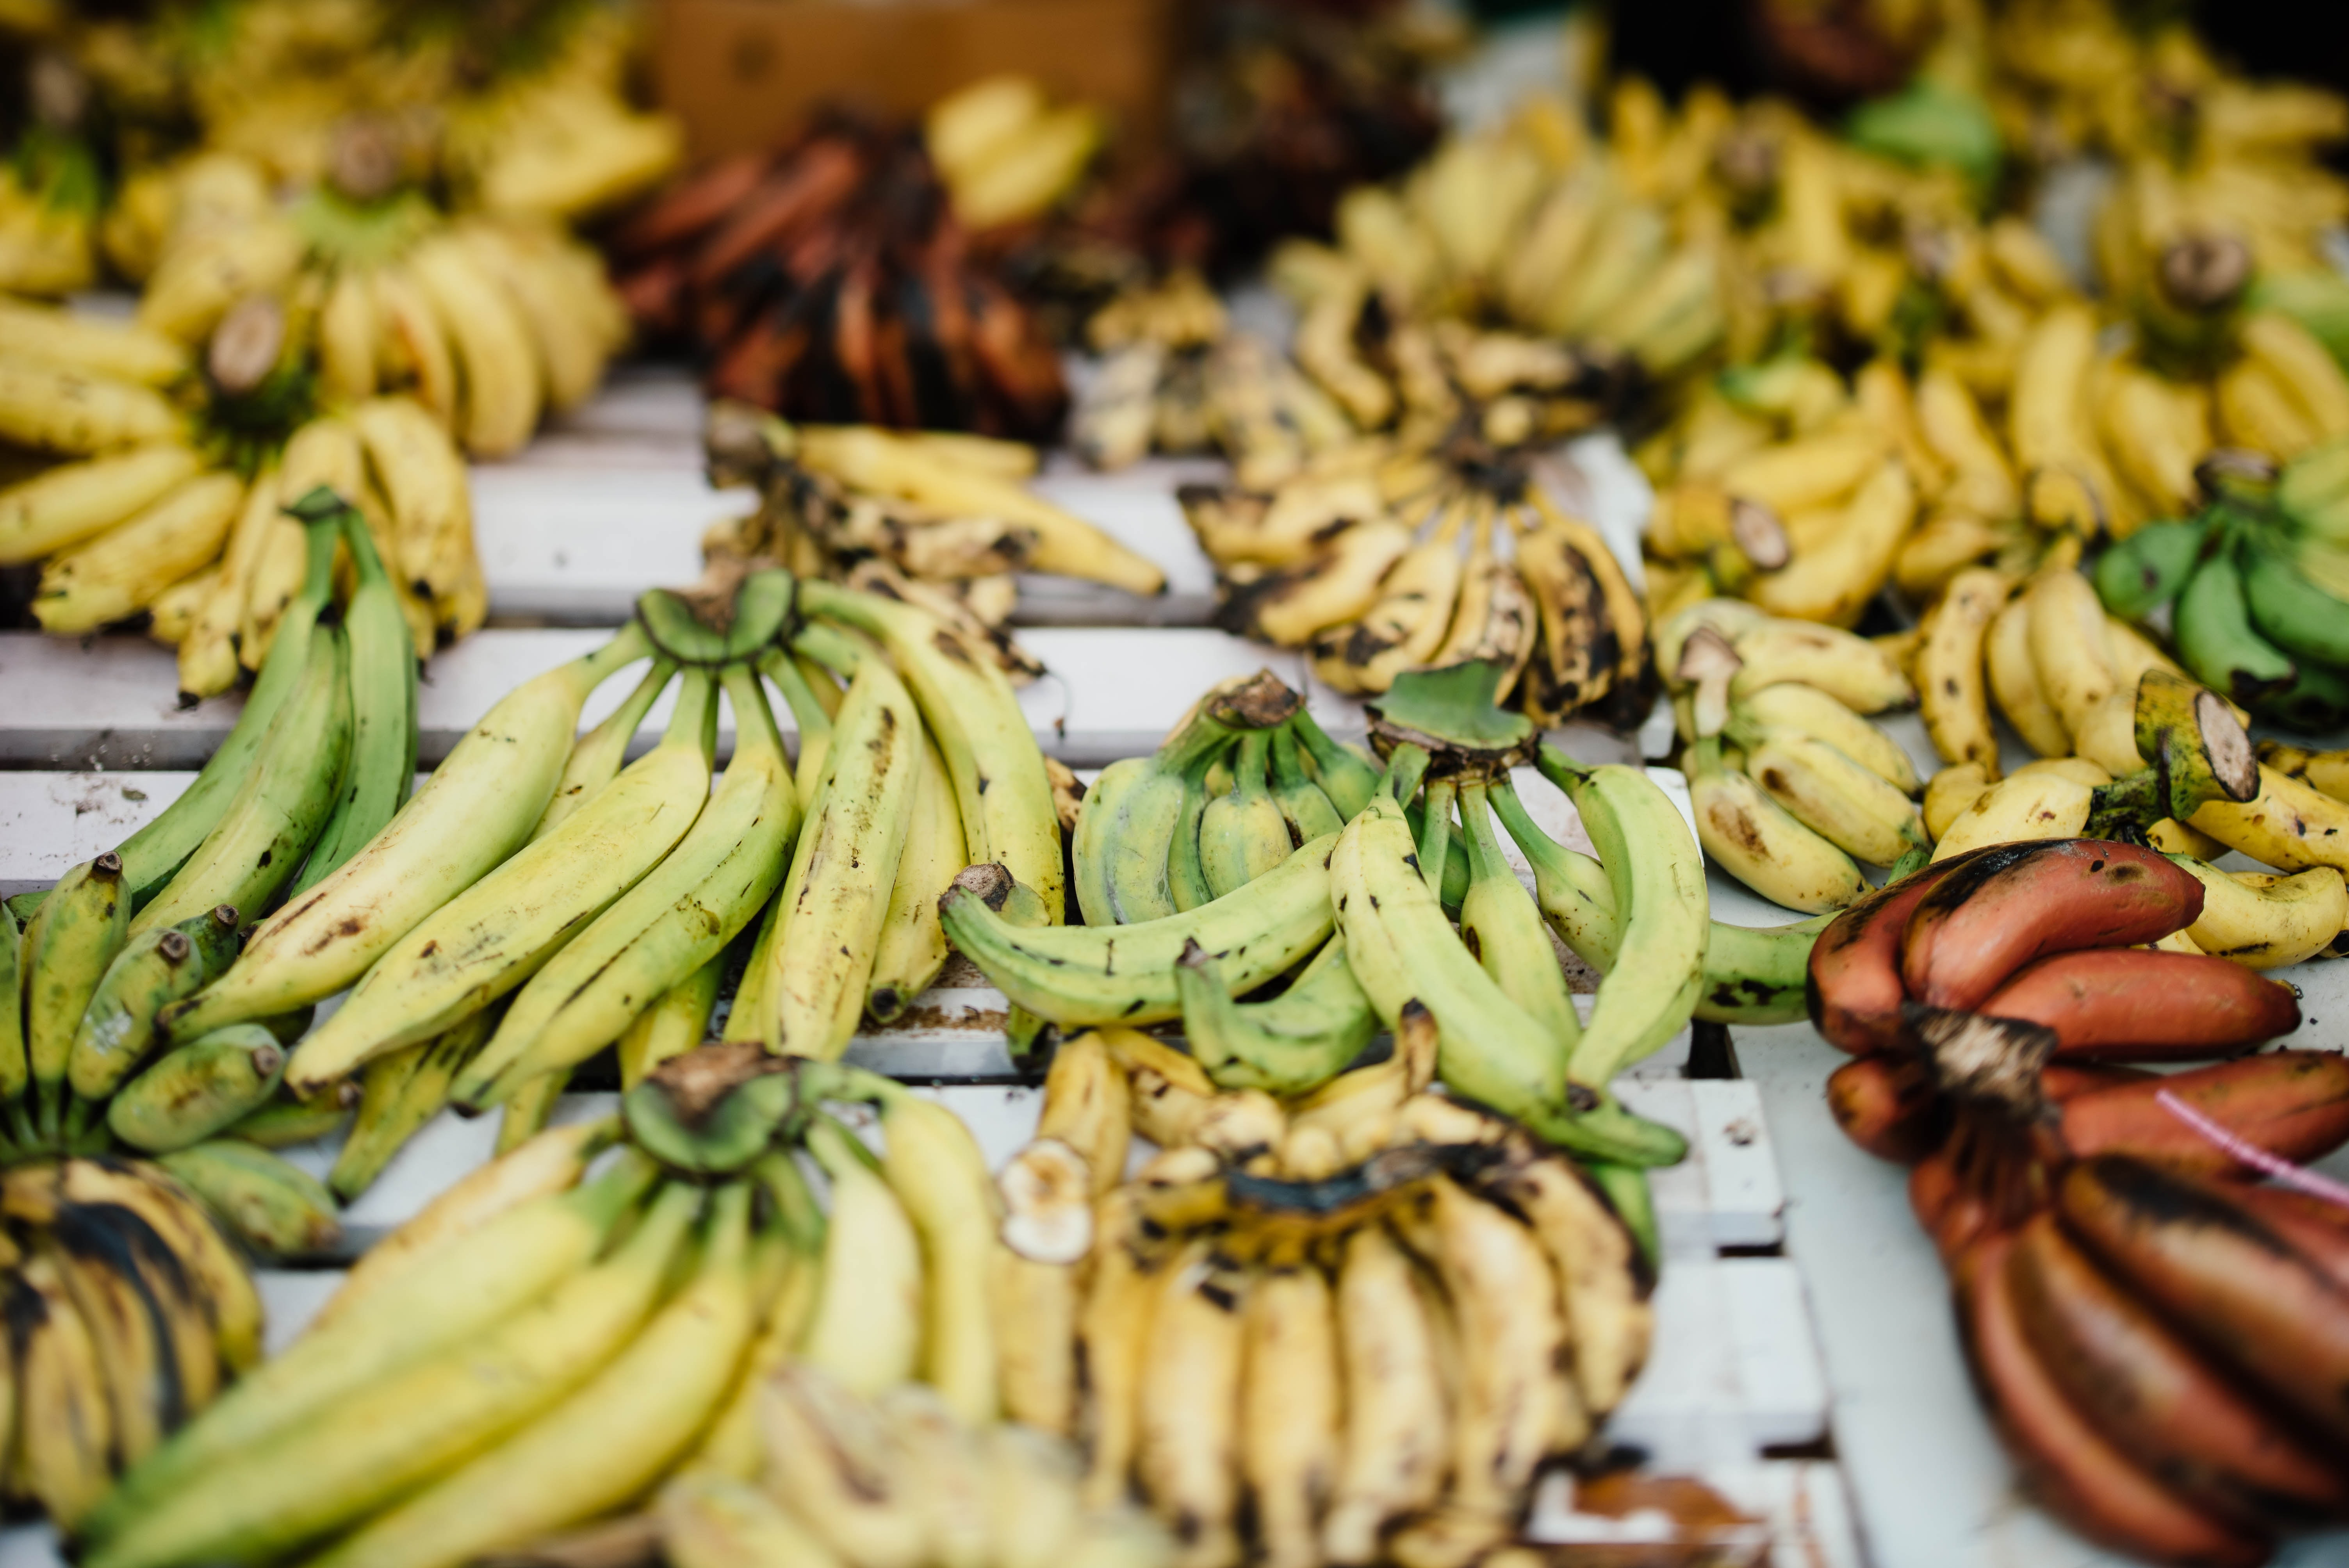 Bunches of bananas of varying ripeness for sale